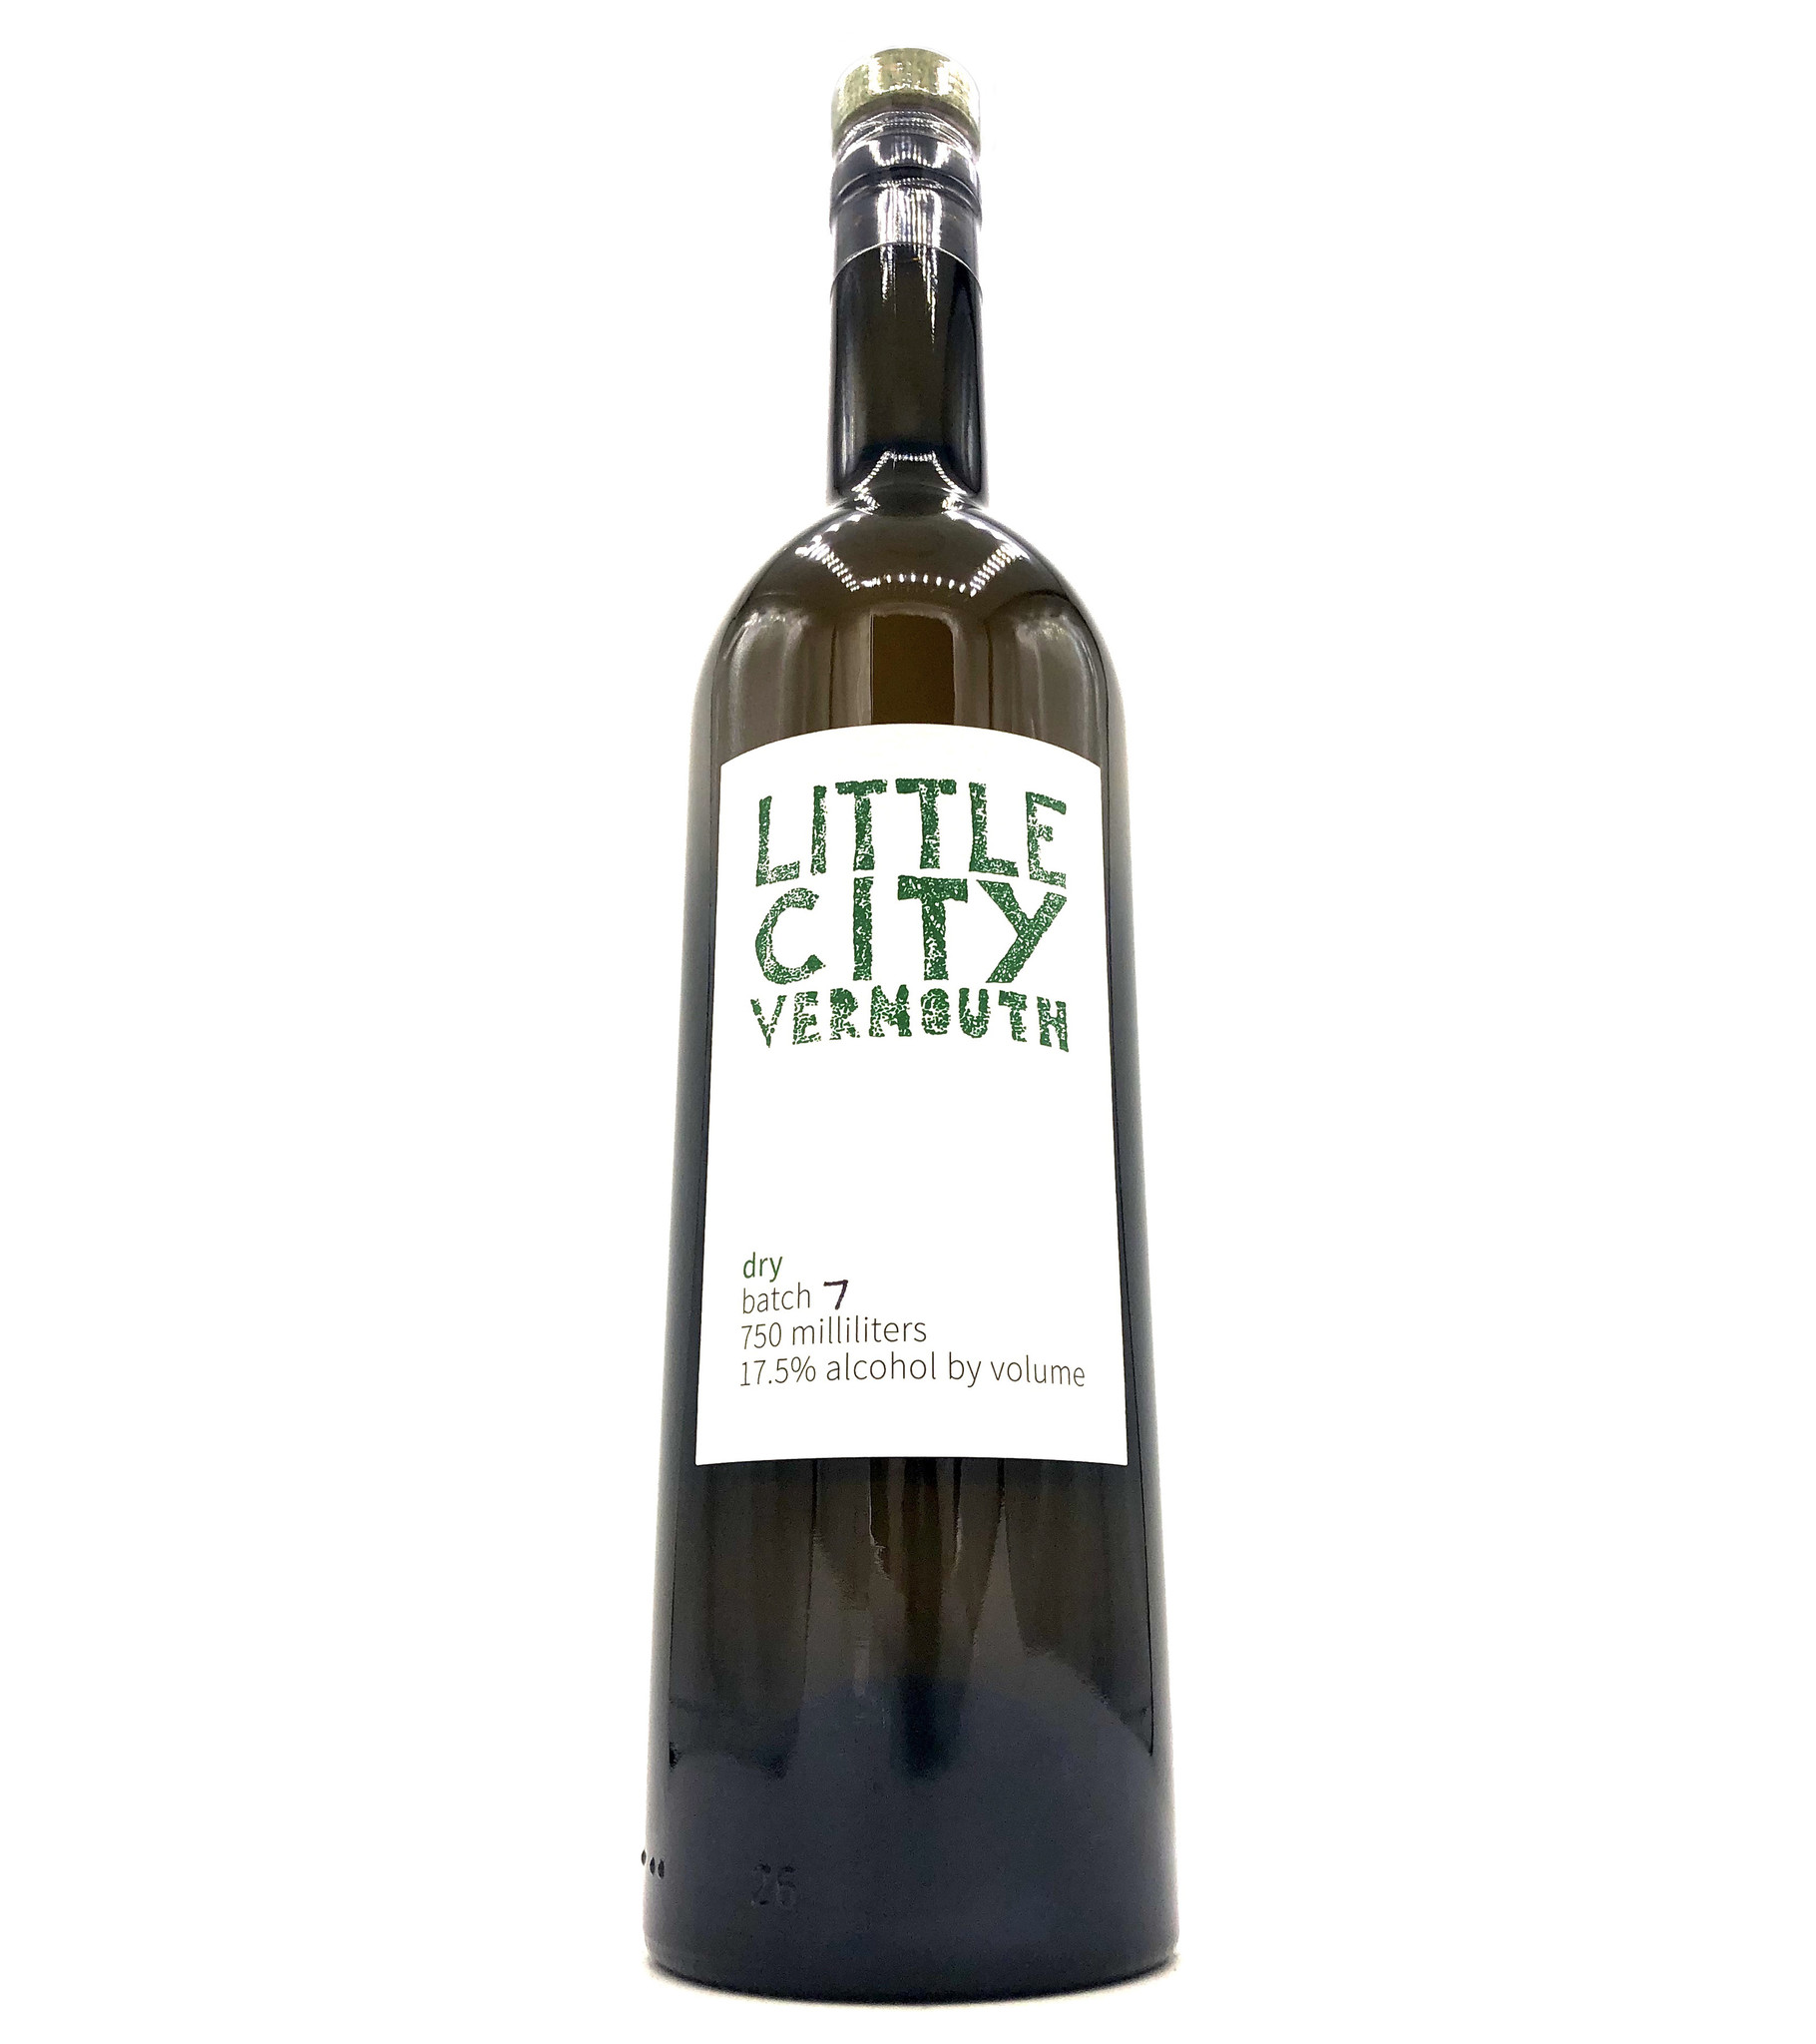 Dry Vermouth 750ml Little City Vermouth